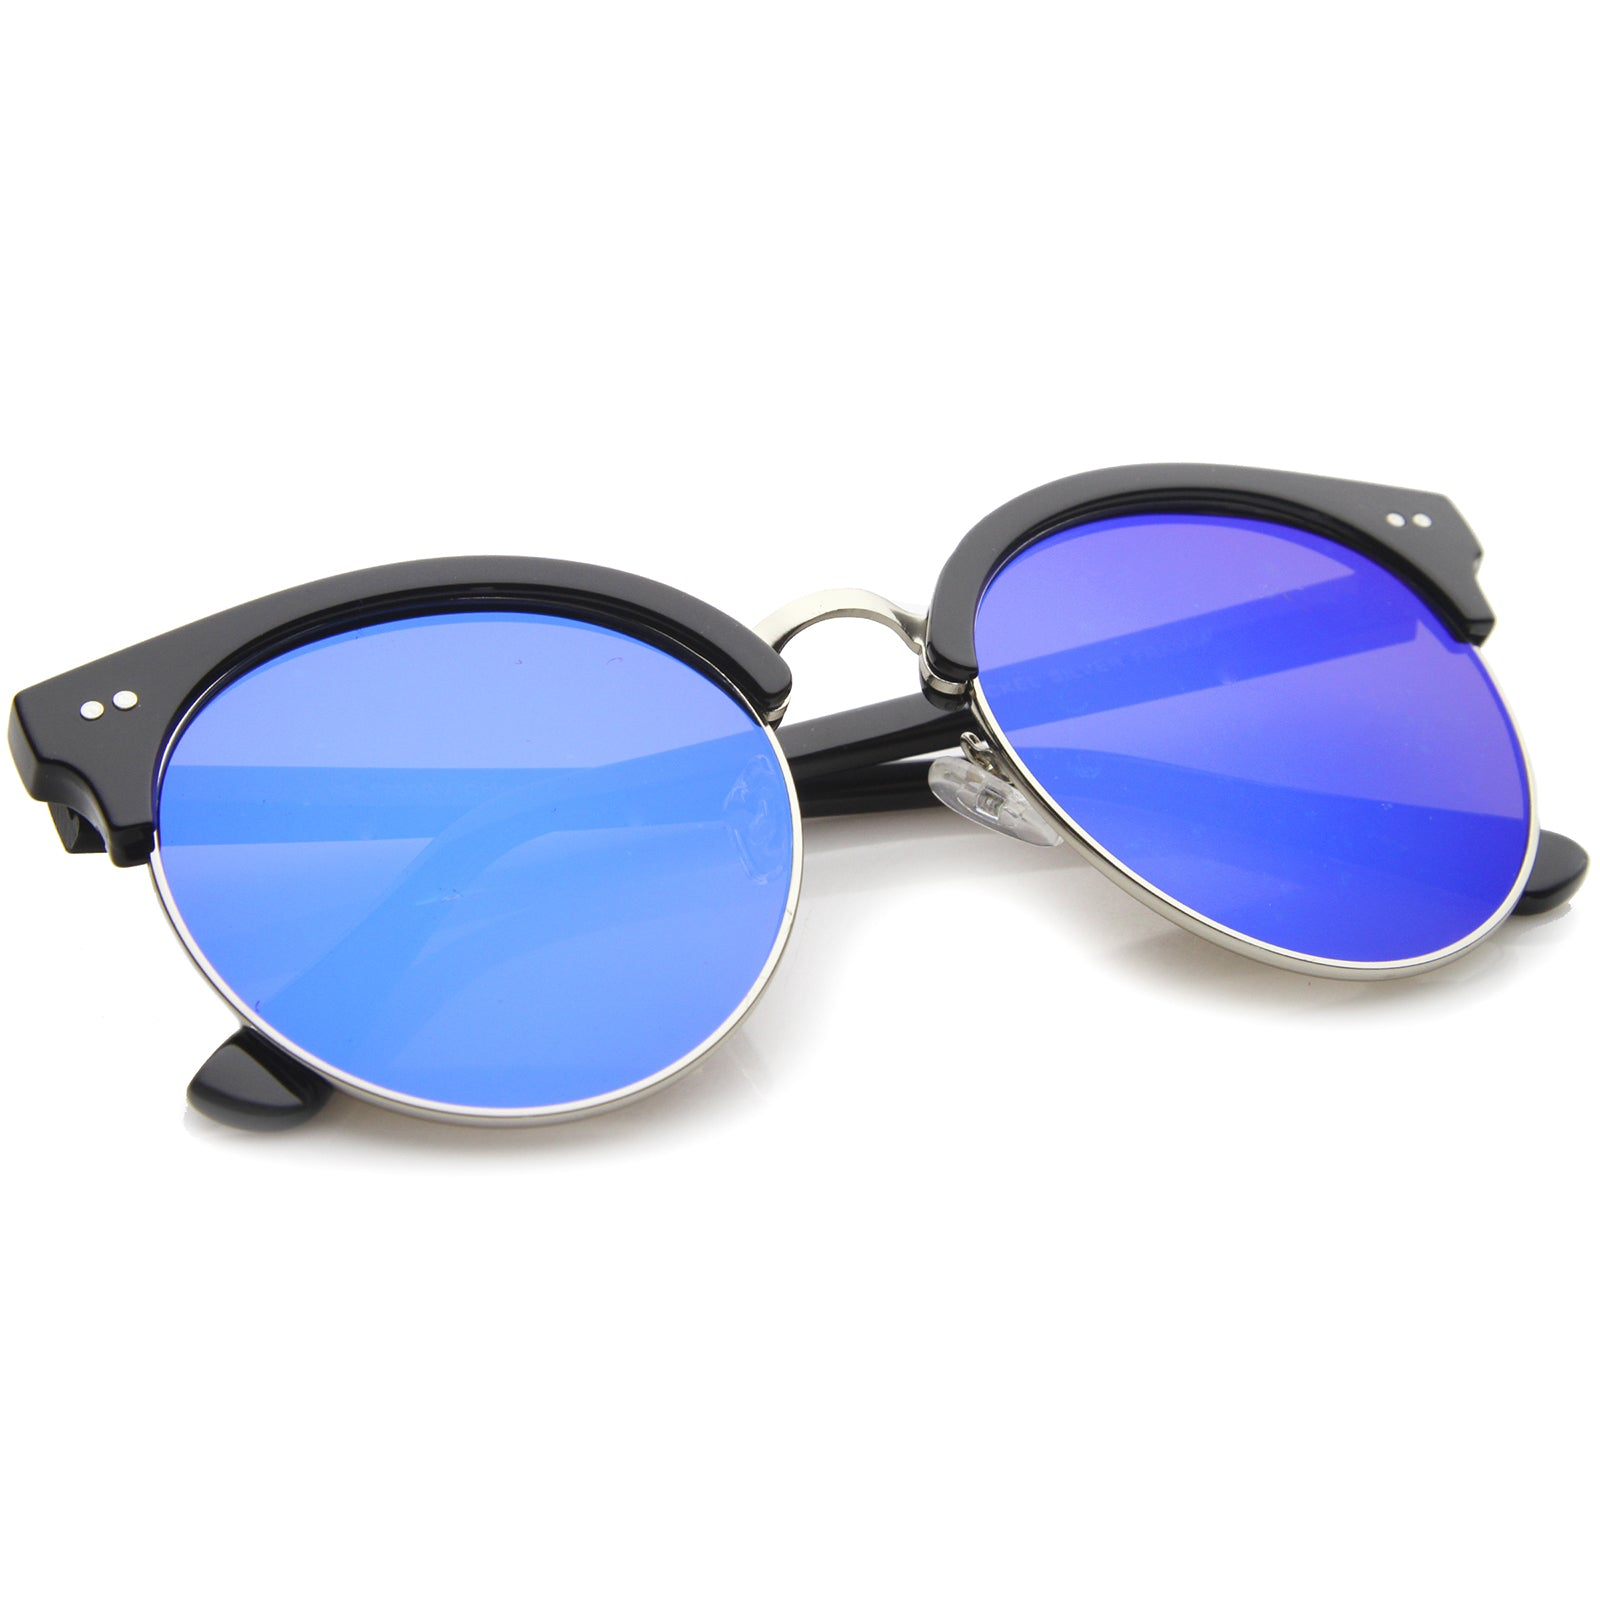 Womens Oversized Sunglasses With UV400 Protected Mirrored Lens - sunglass.la - 12